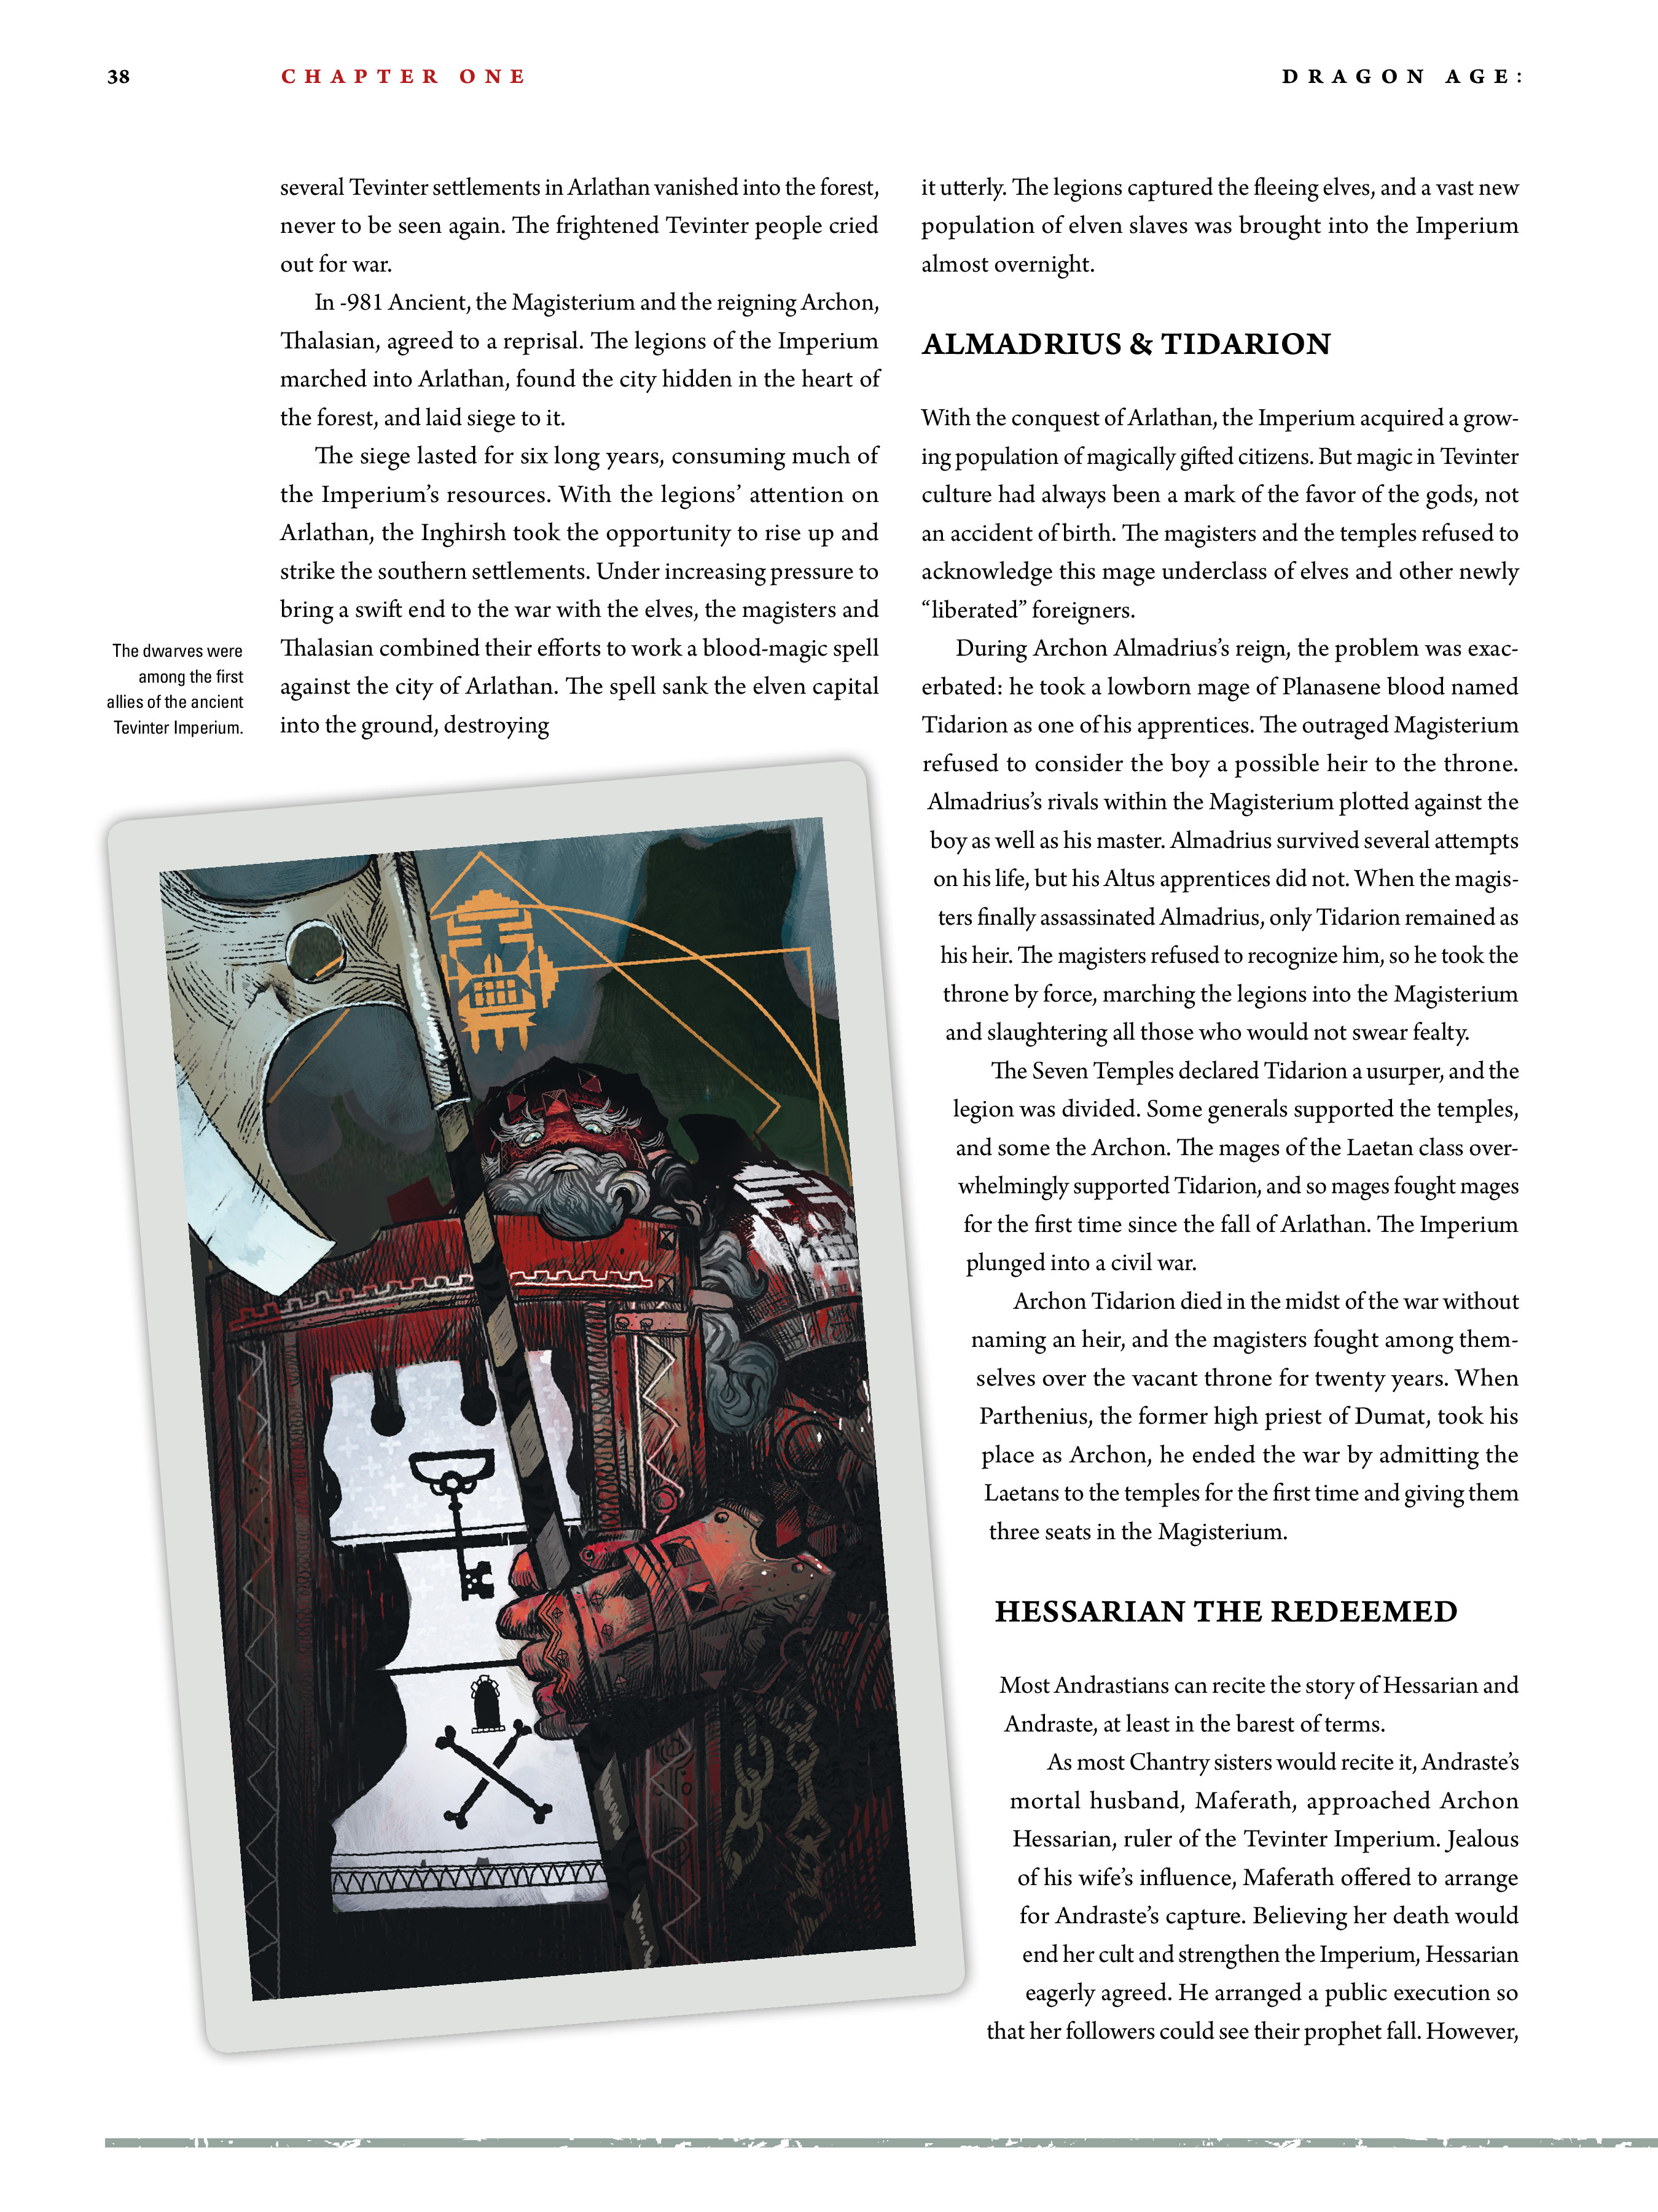 Read online Dragon Age: The World of Thedas comic -  Issue # TPB 2 - 35